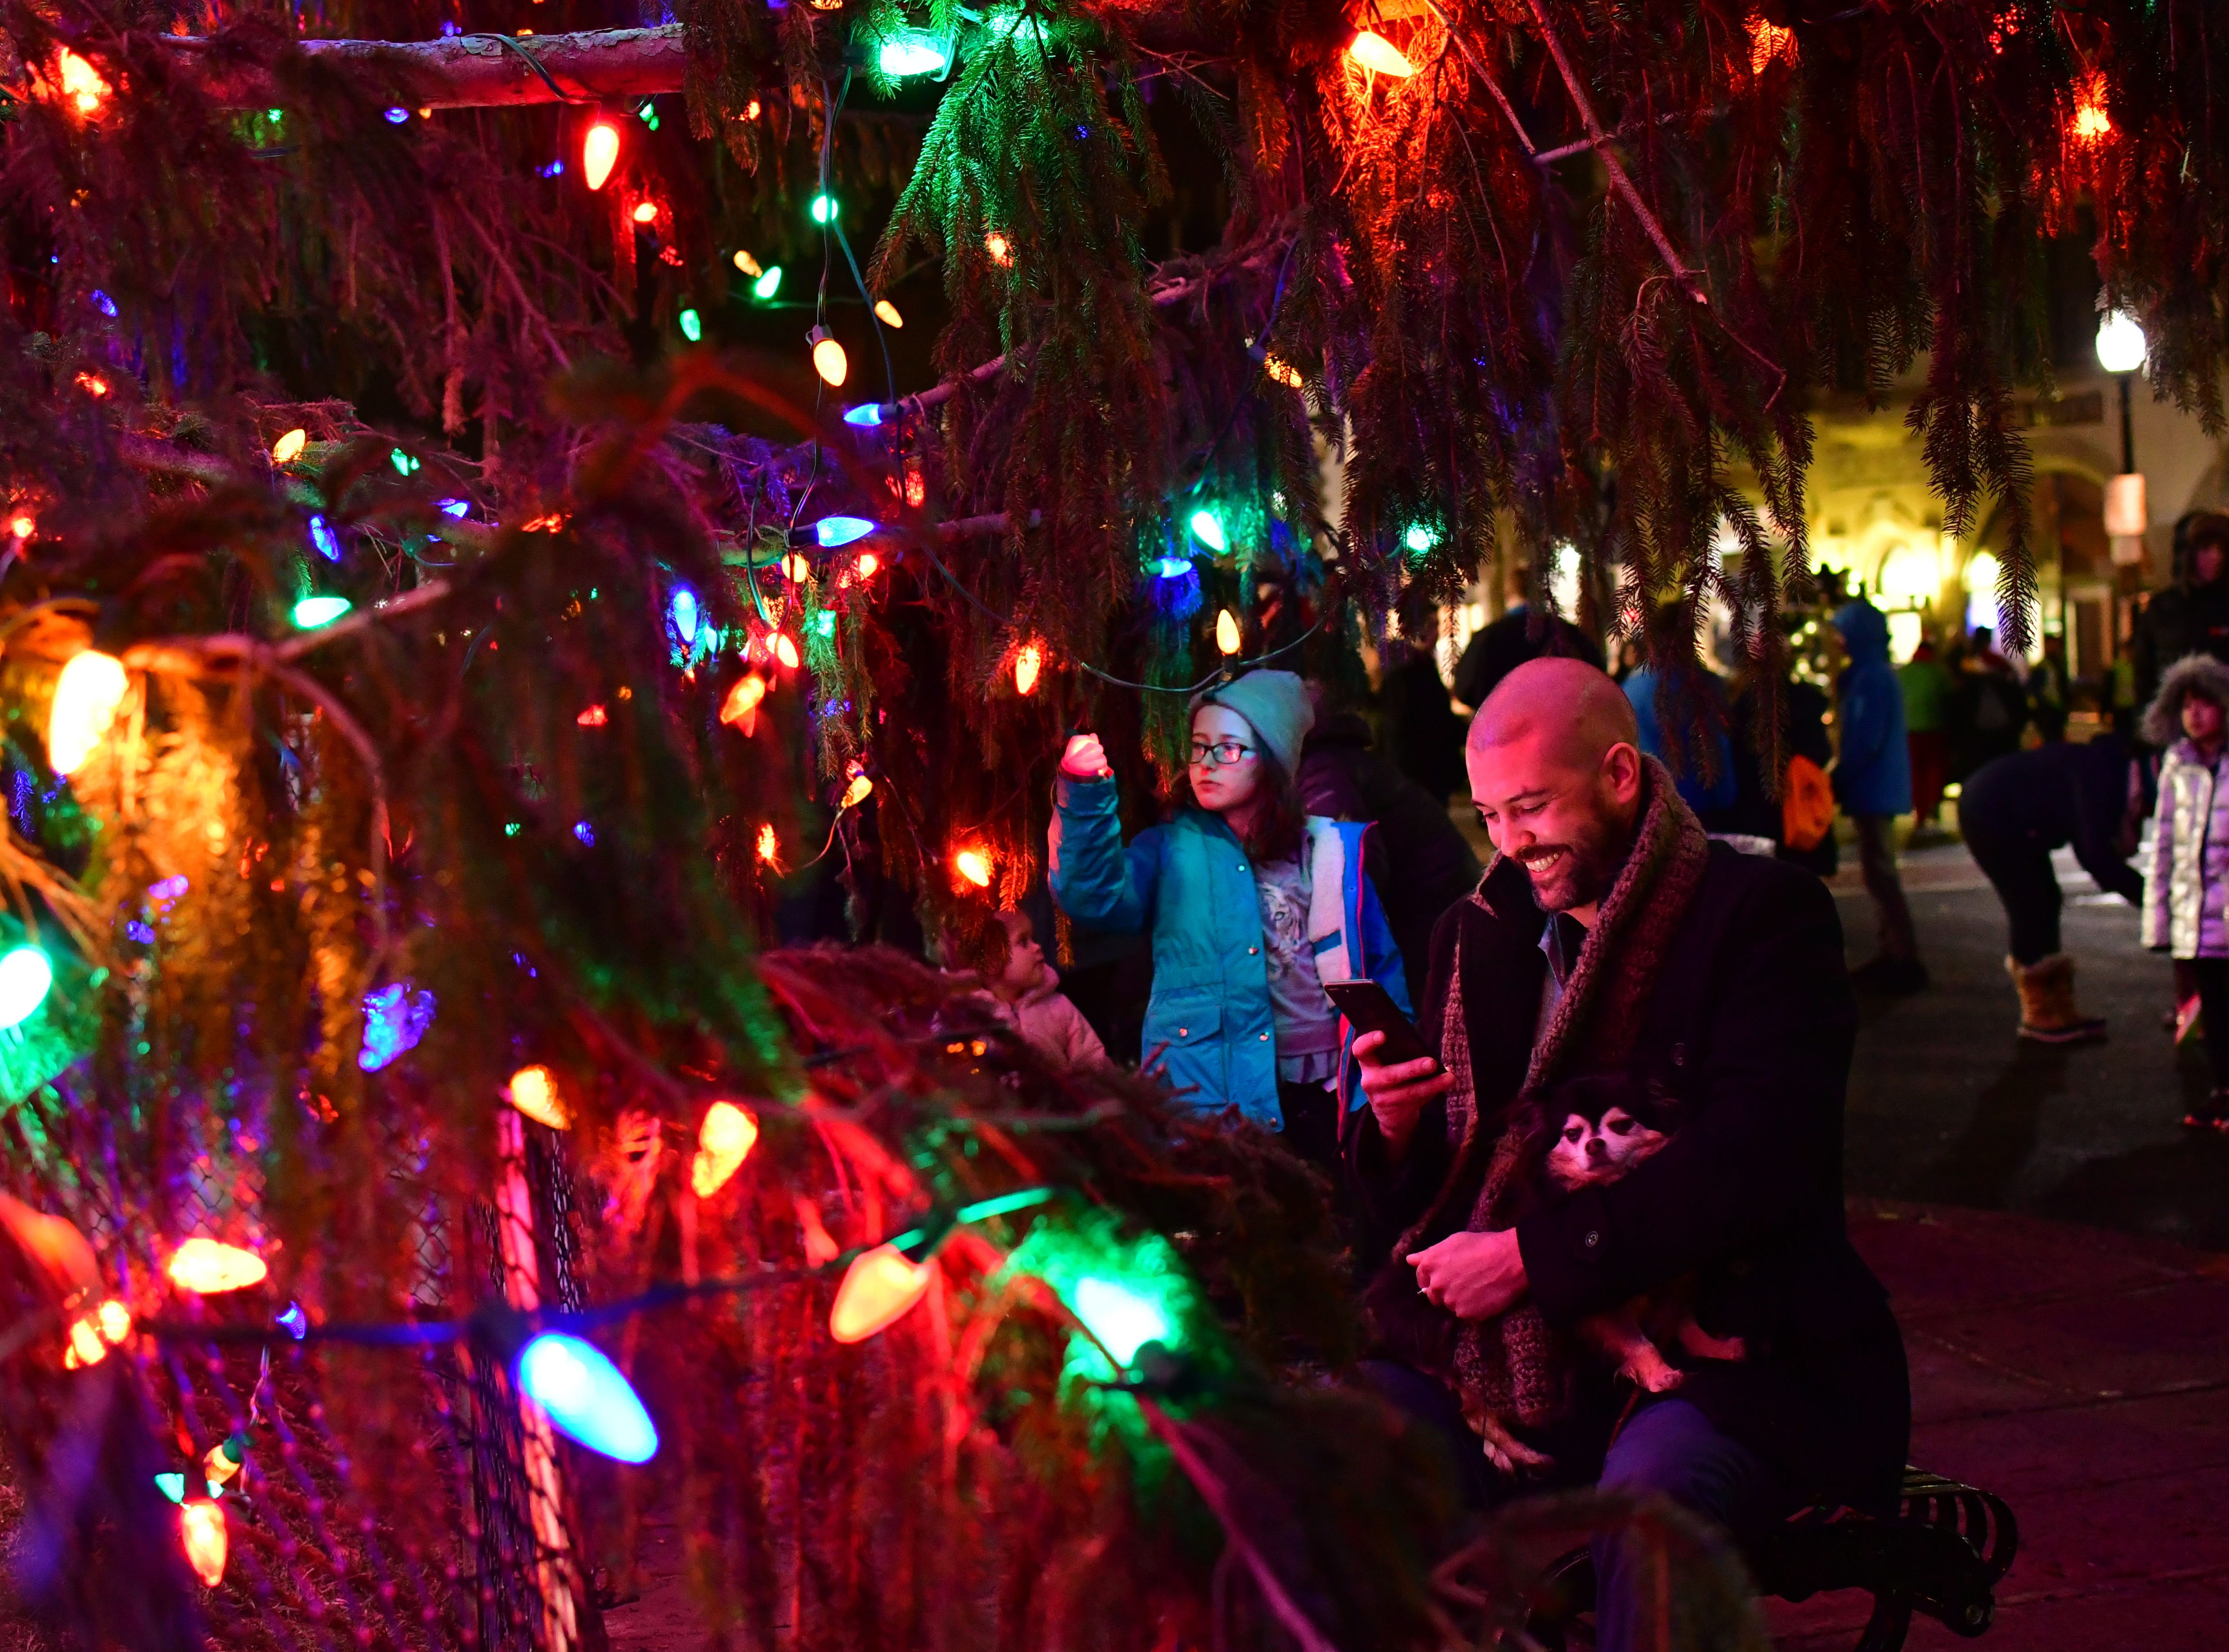 Charles Kreps, sits down on a bench by the newly lit tree. Holiday festivities along East Ridgewood Avenue in Ridgewood on Nov. 30.